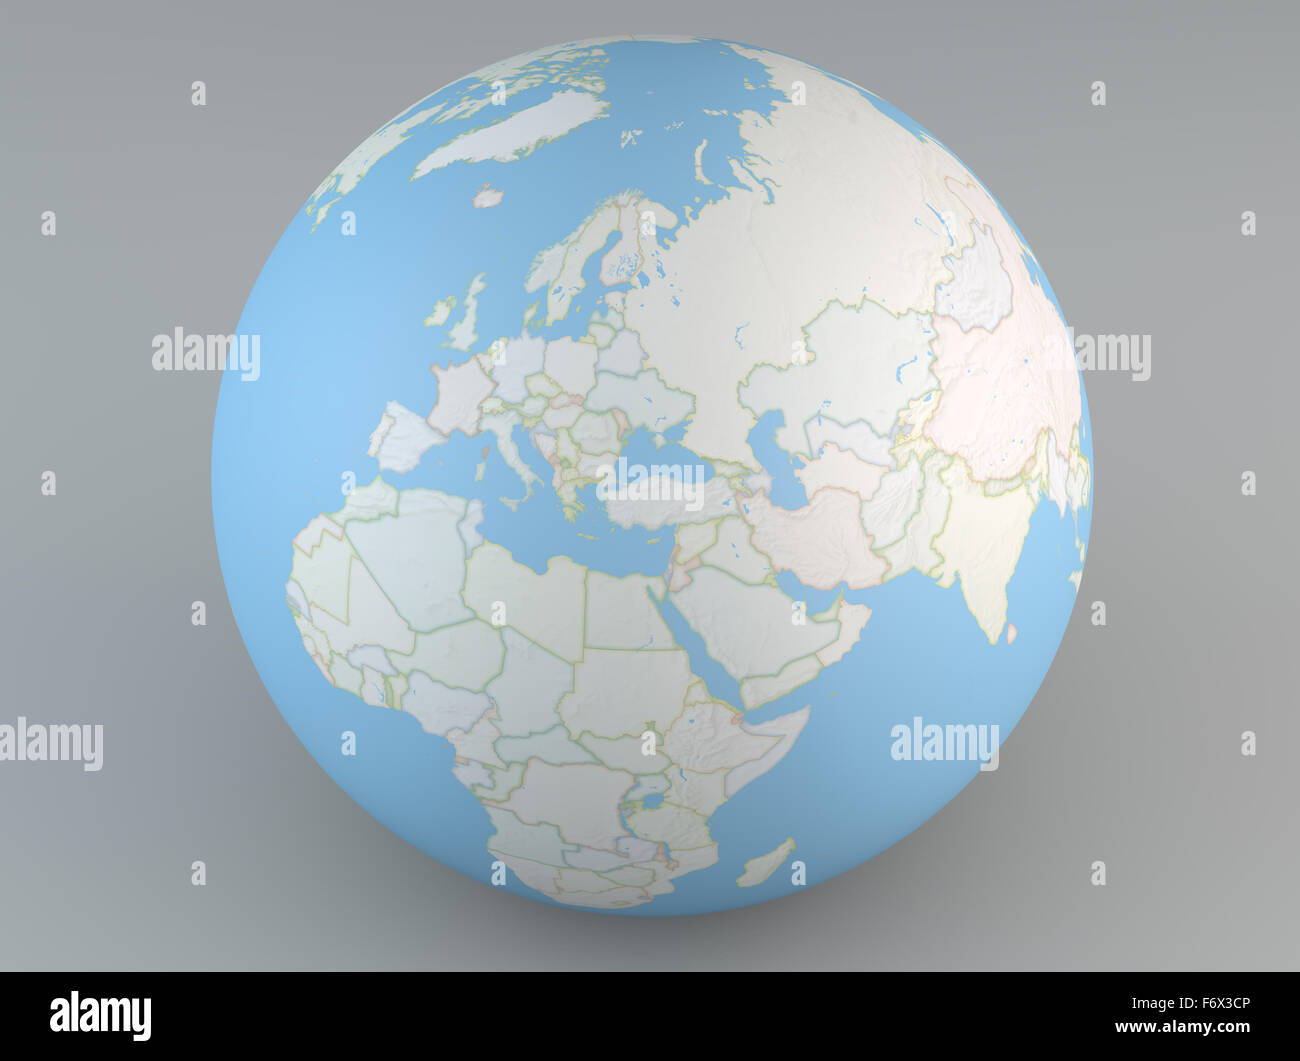 Planisphere map globe, political map, Europe North Africa and Middle ...